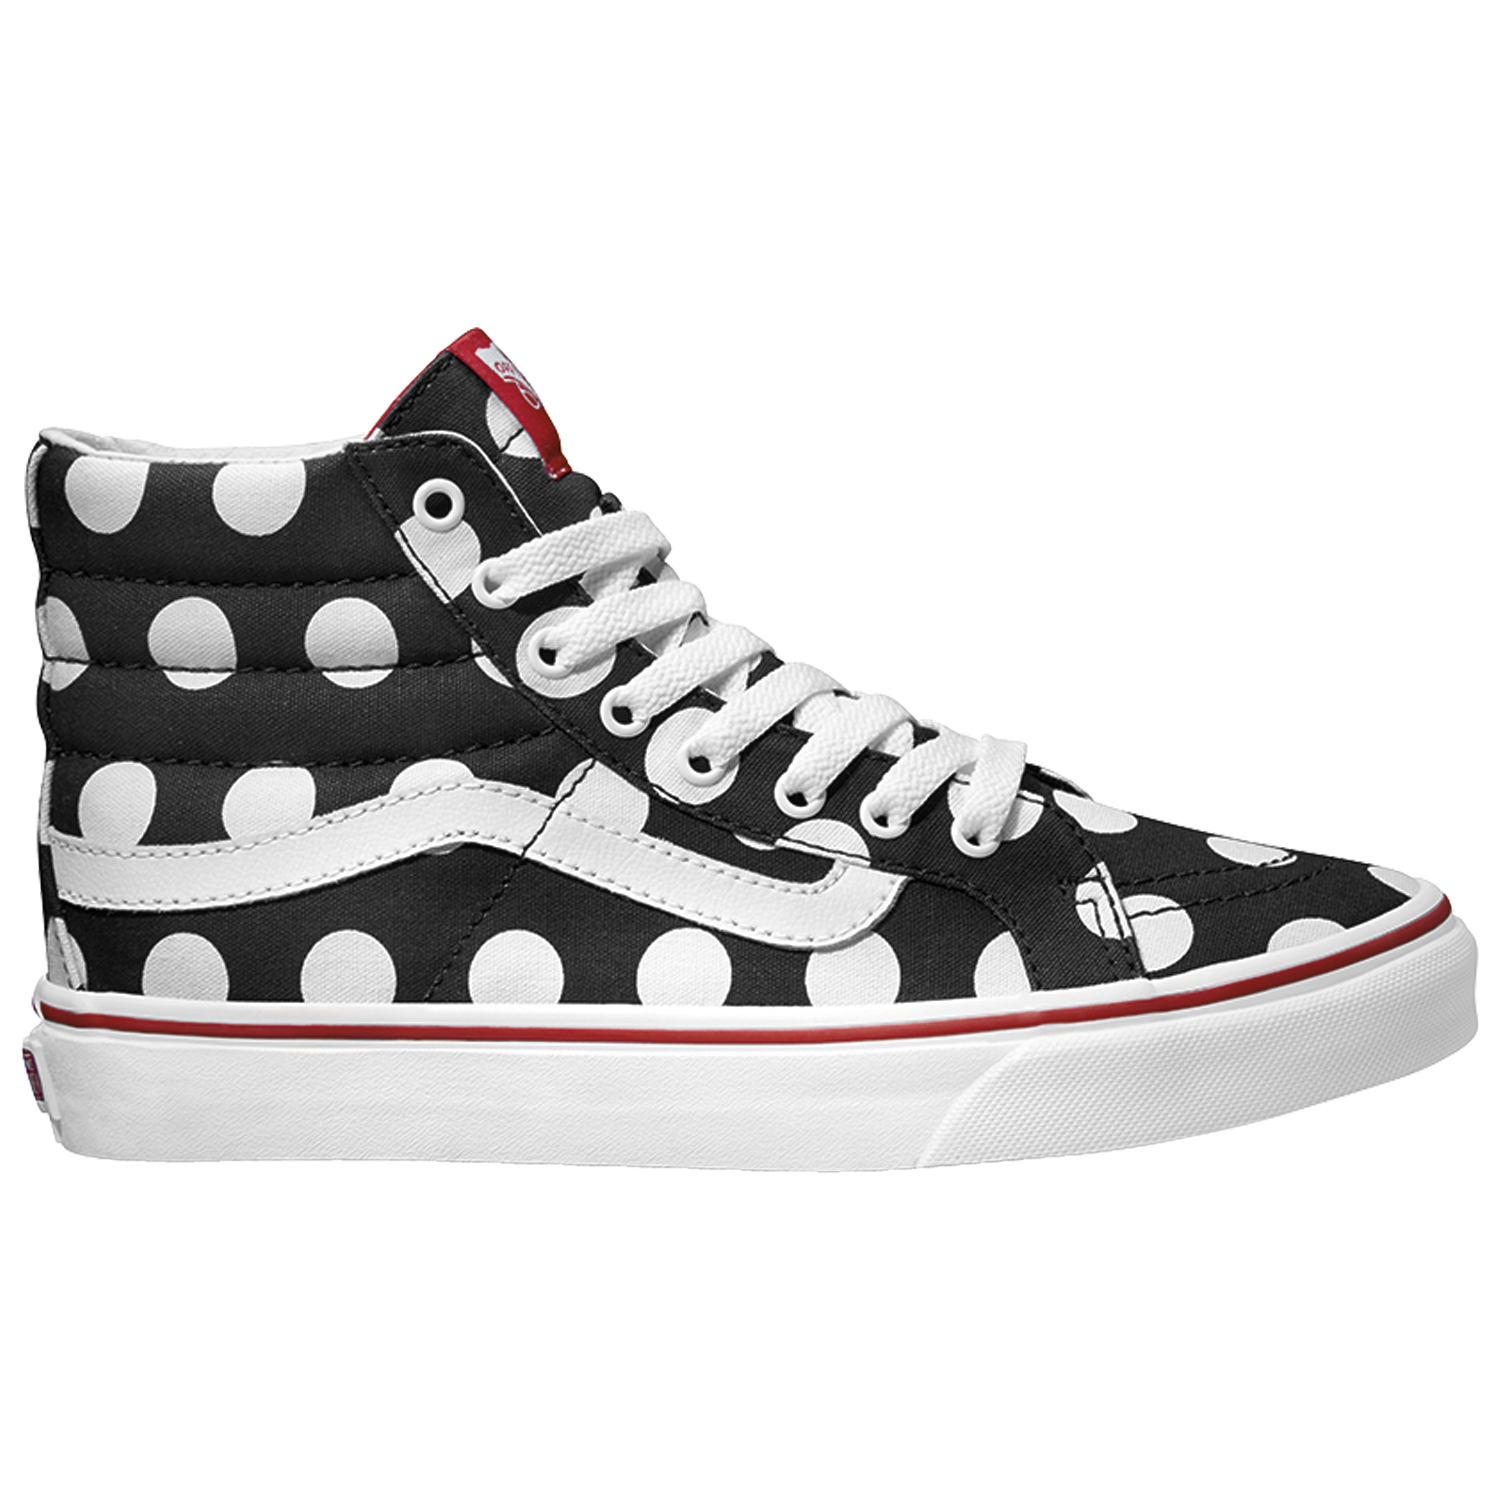 vans-sk8-hi-slim-polka-dot-black-fiery-red-139-90